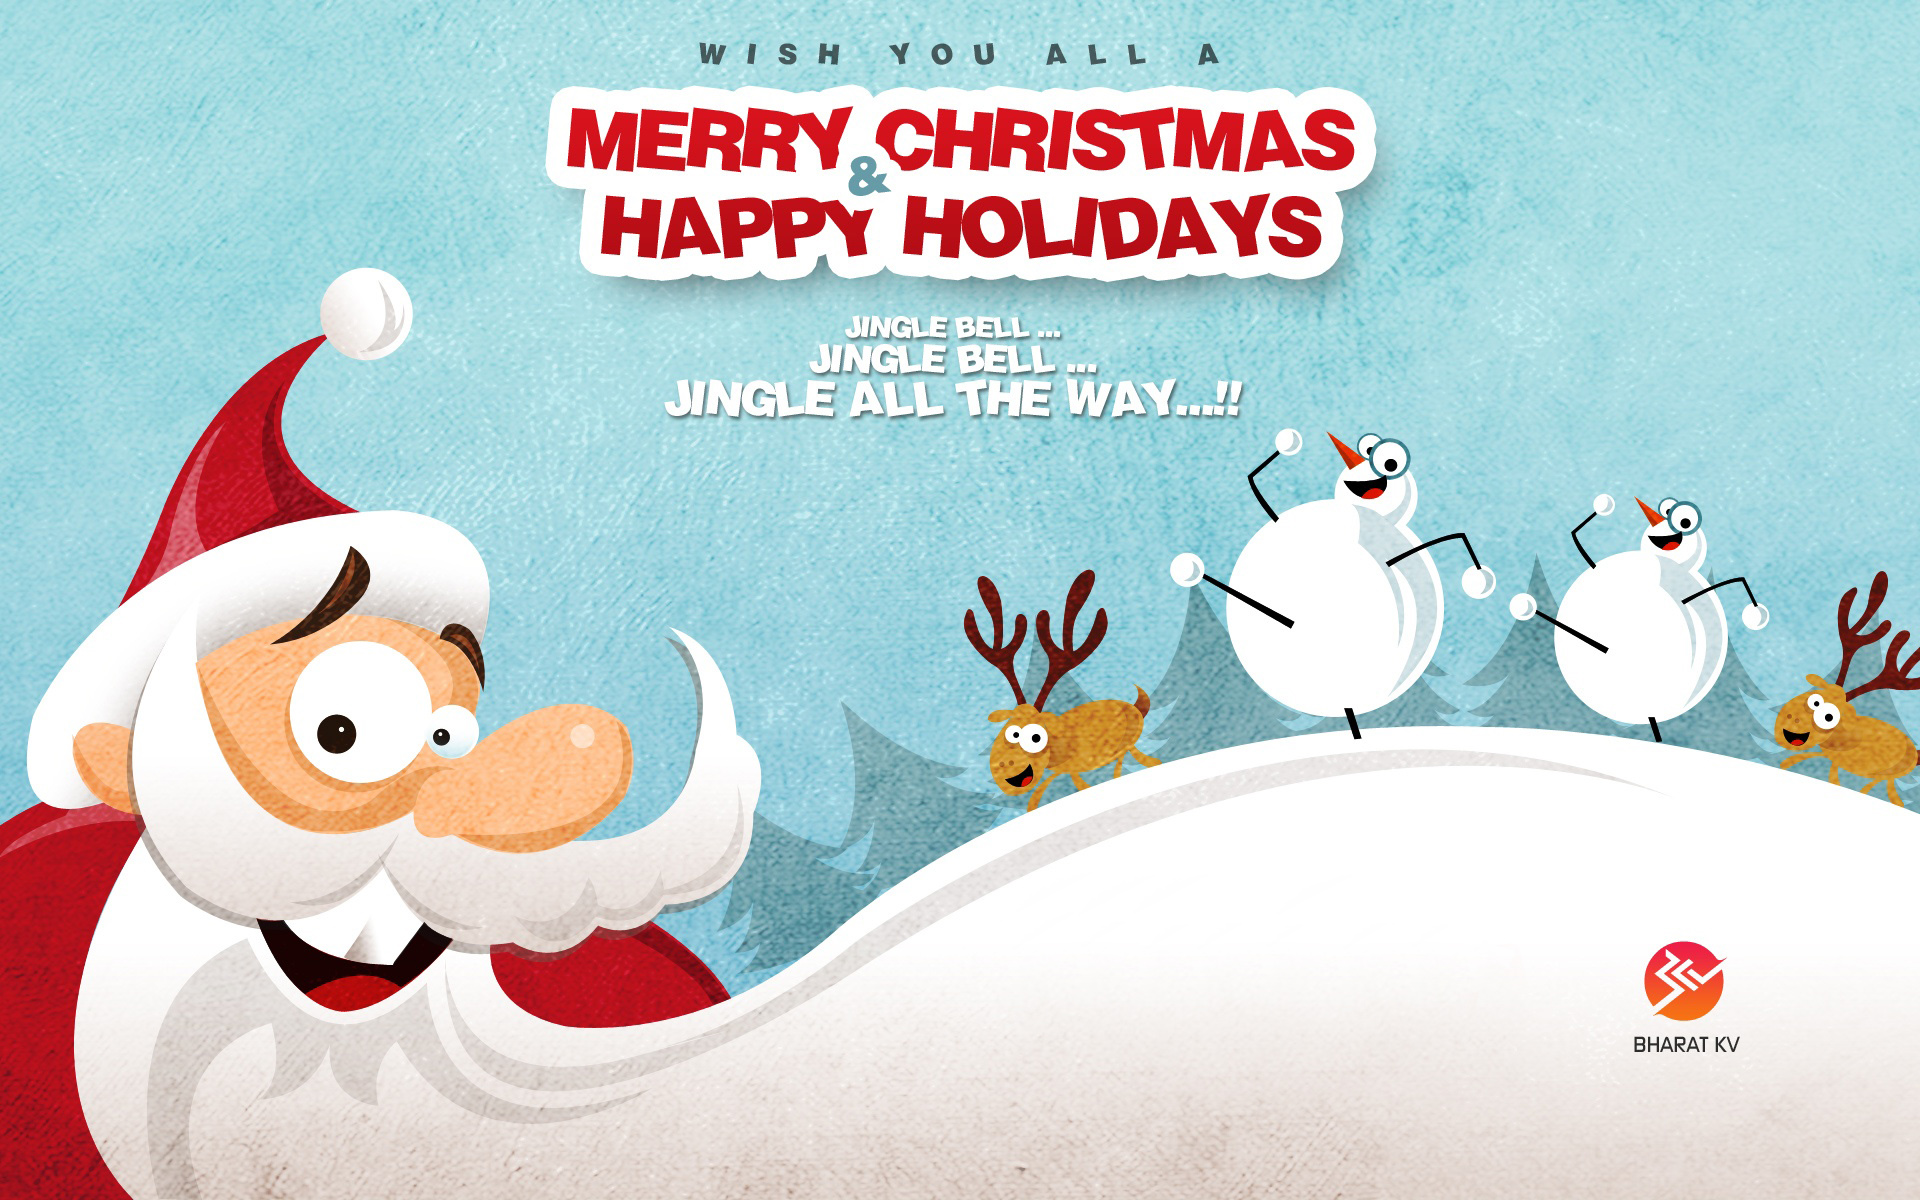 Merry Christmas Happy Holidays Wallpapers HD Wallpapers 1920x1200